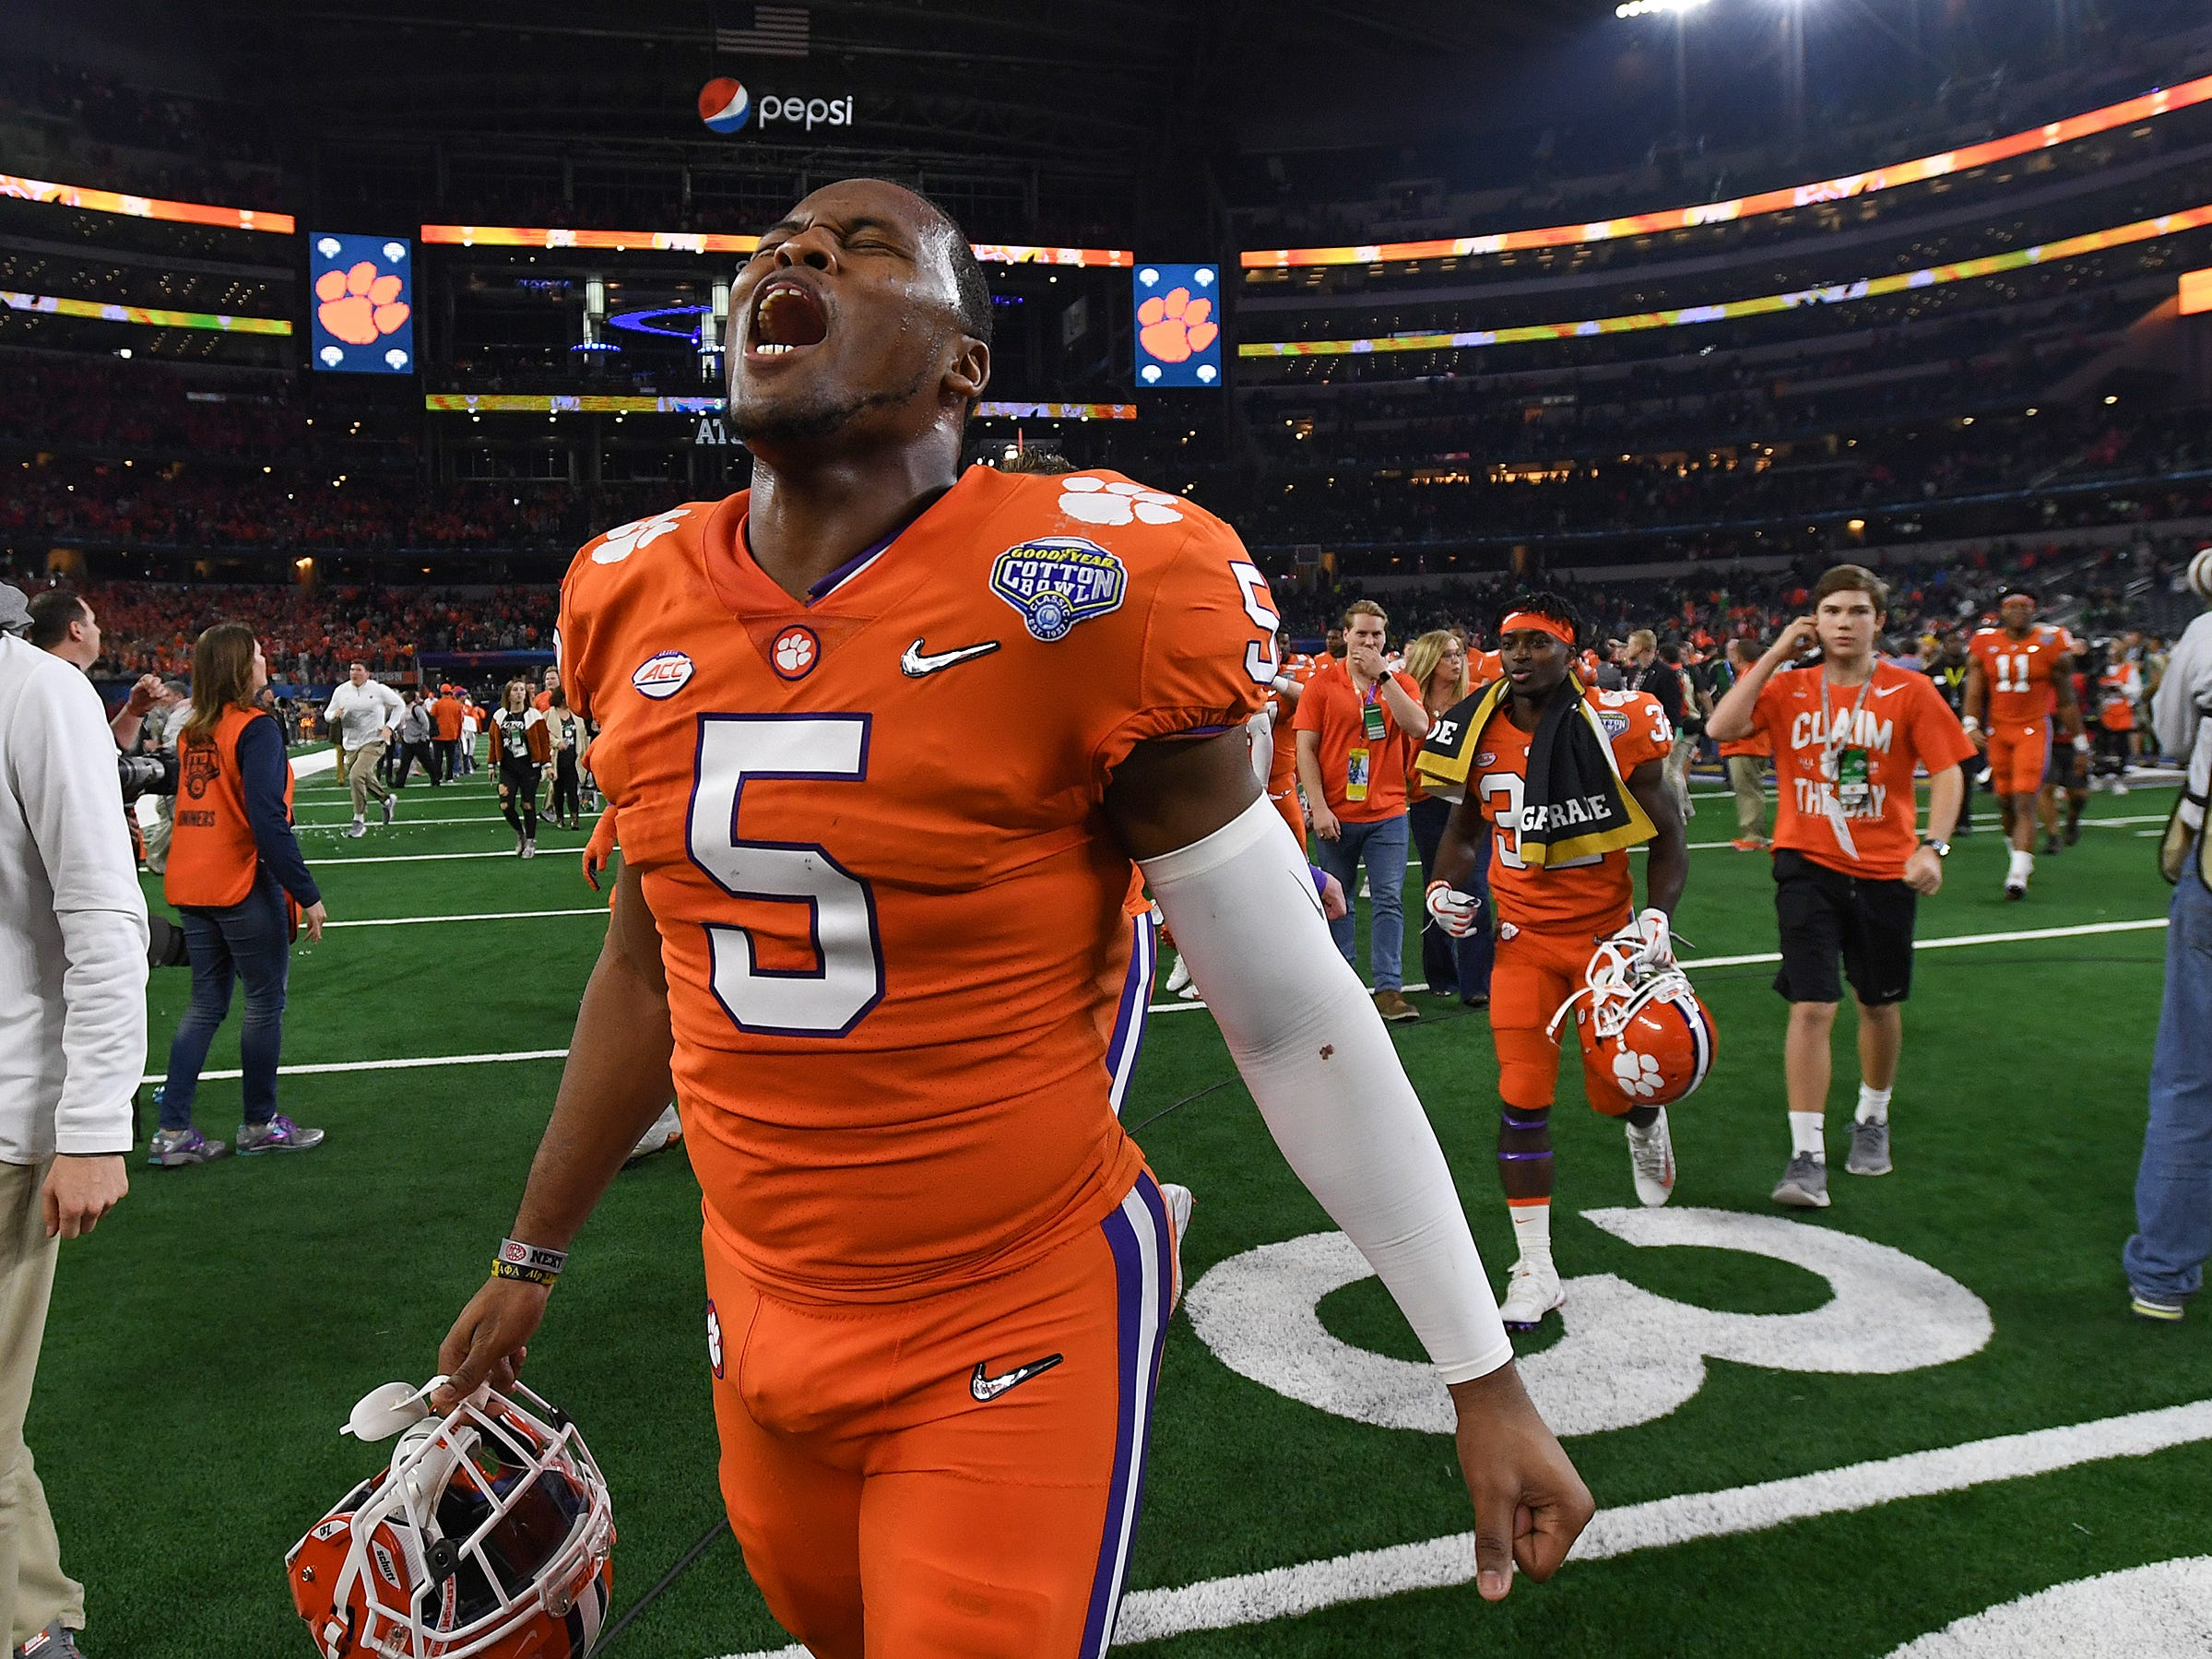 Clemson linebacker Shaq Smith (5) celebrates the Tigers 30-3 win over Notre Dame at AT&T stadium in Arlington, TX Saturday, December 29, 2018.